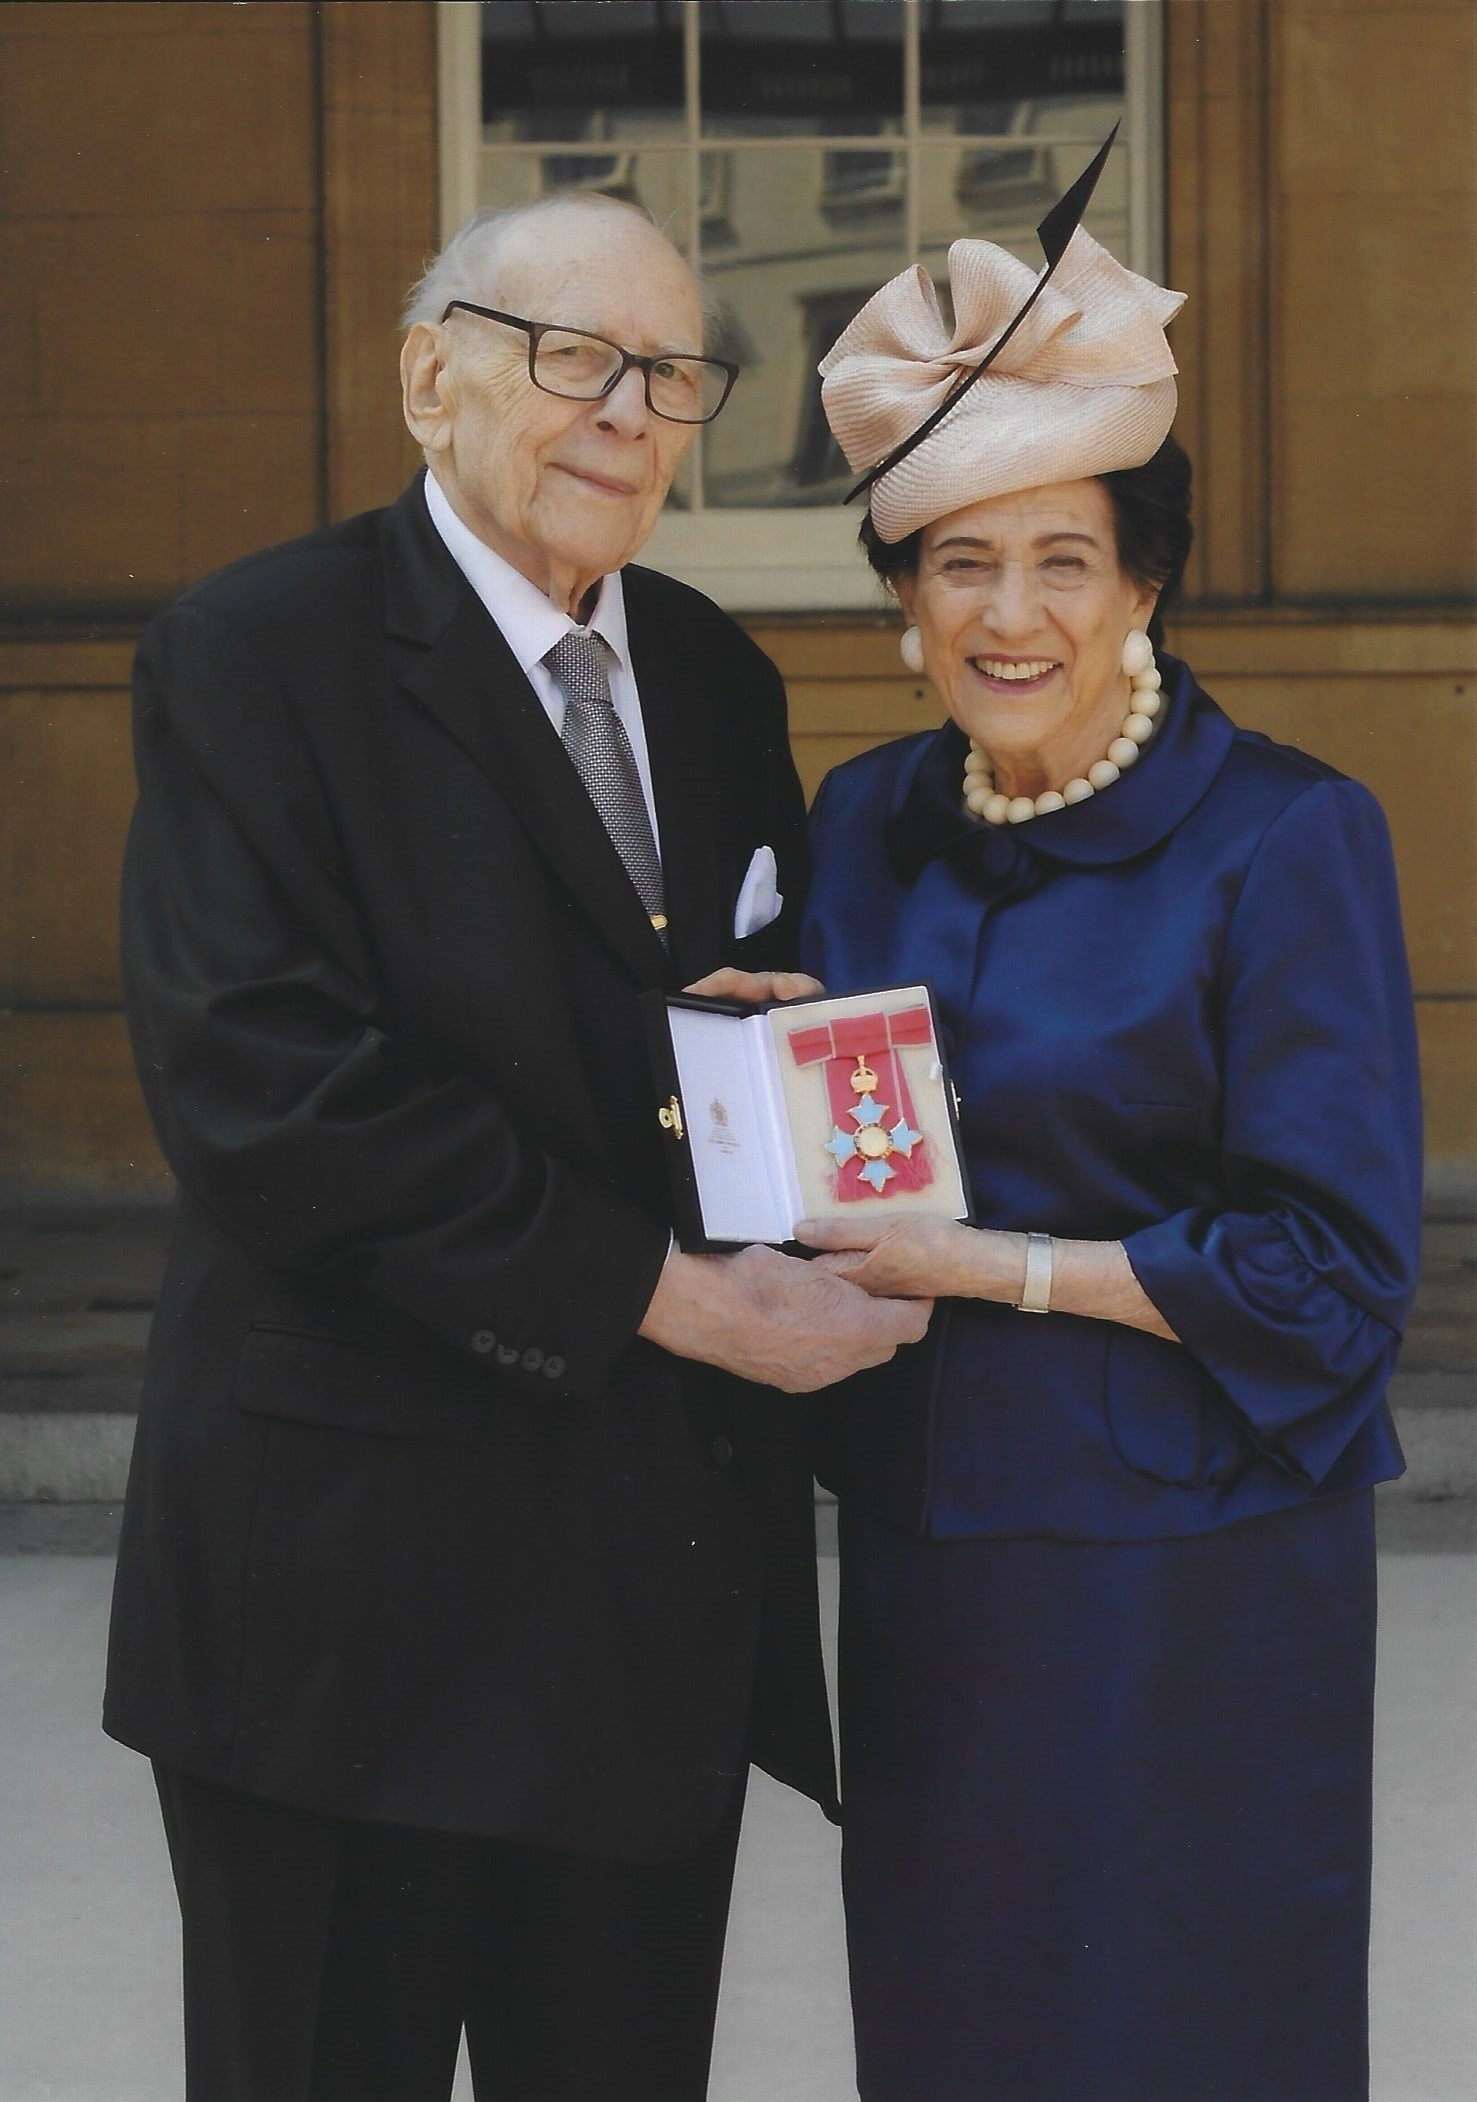 Lilian and Victor Hochhauser after the Investiture